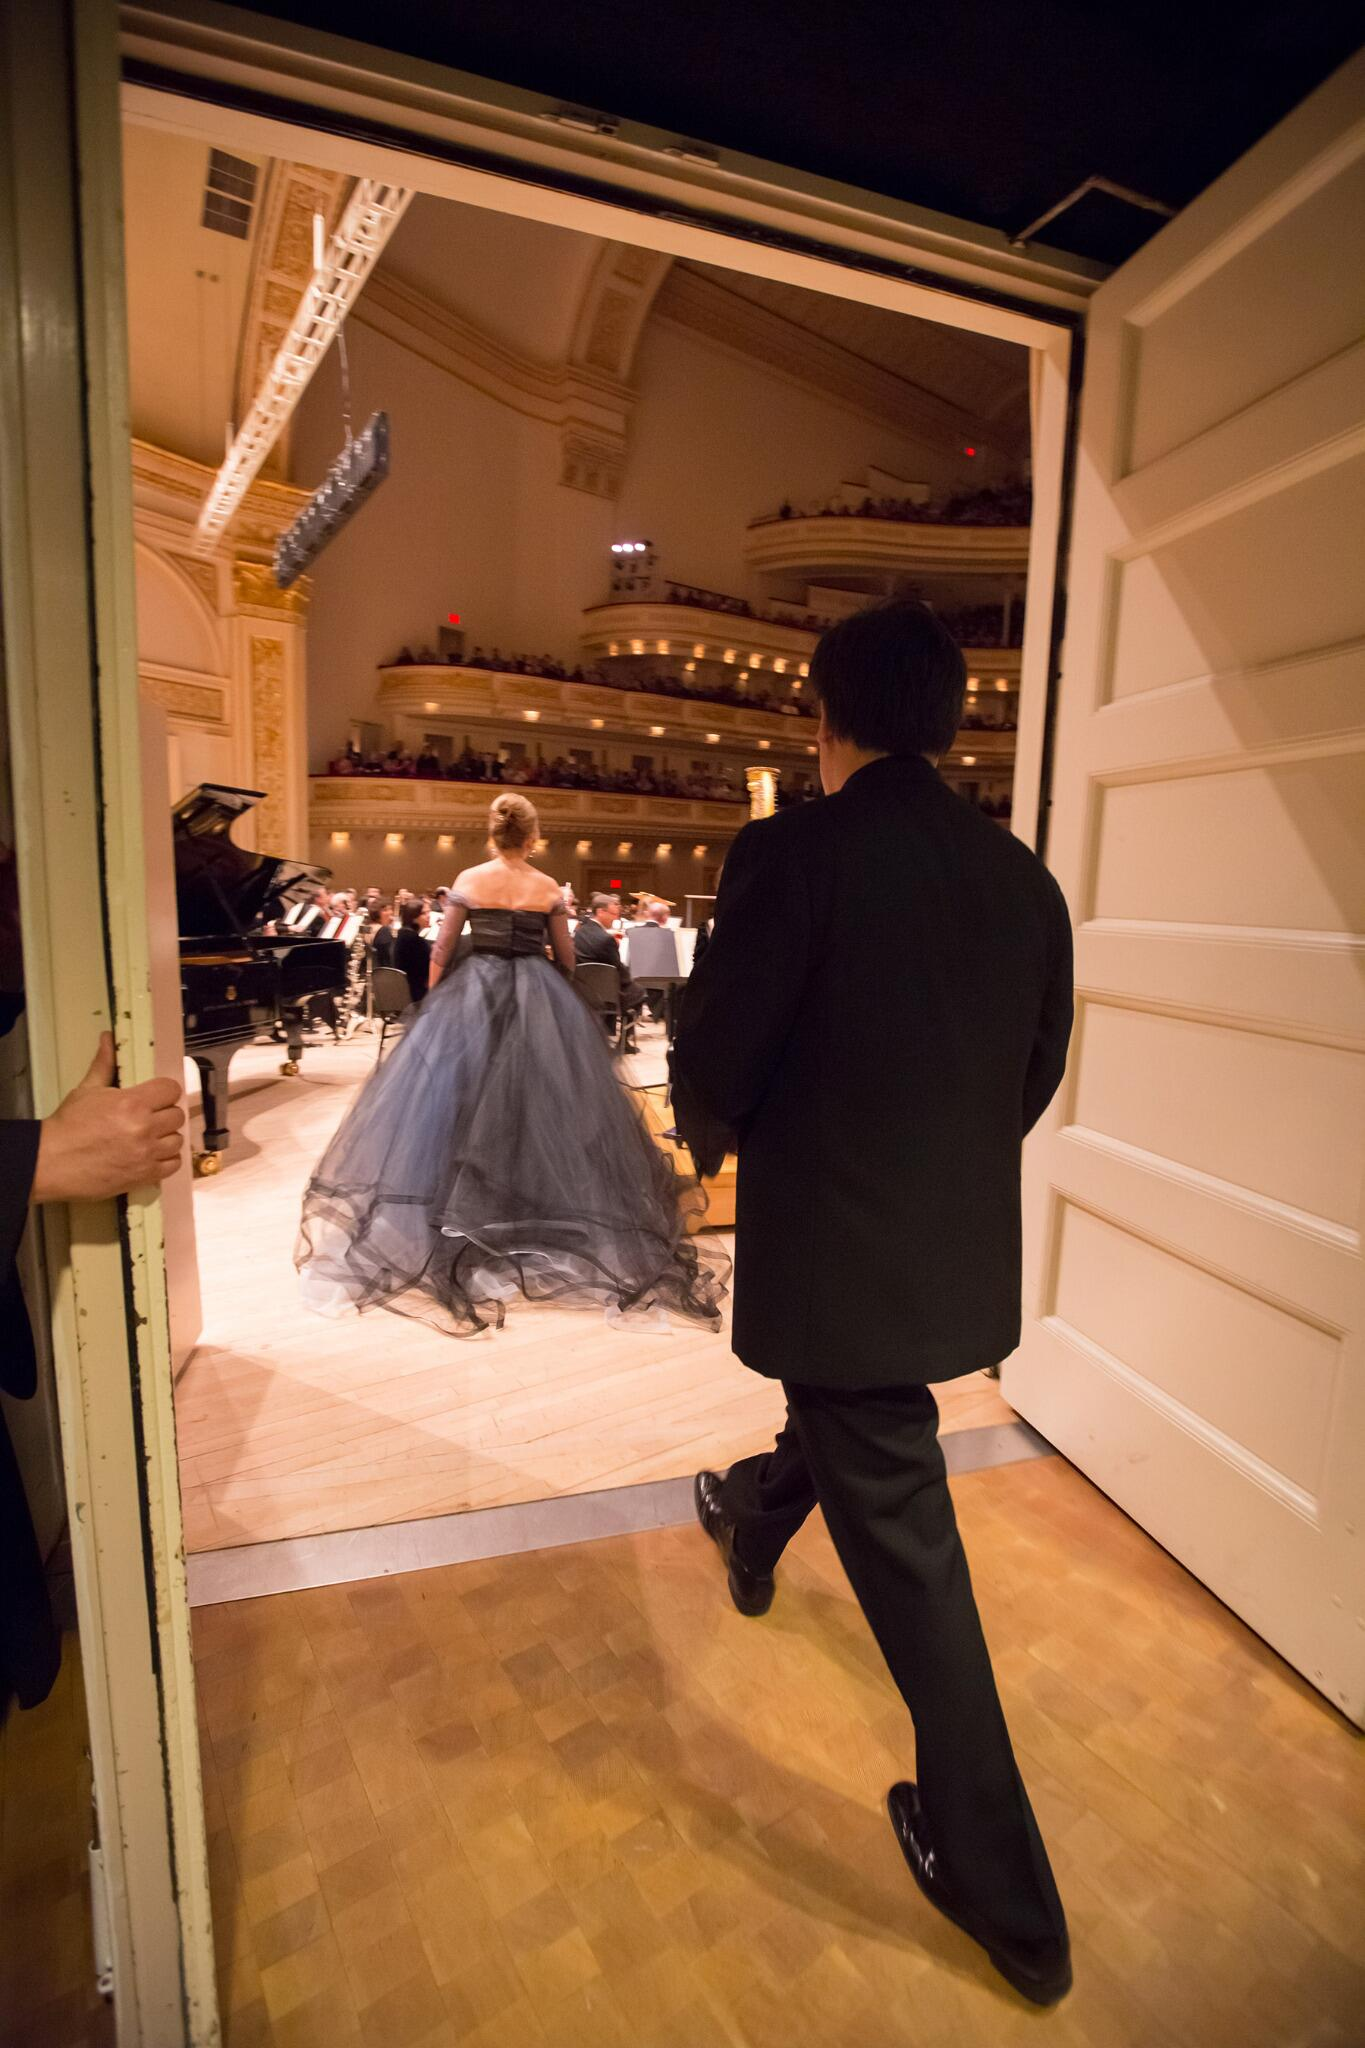 From Fri's @carnegiehall perf, @reneesmusings and @GilbertConducts take to the stage. (Photo: Chris Lee) #thatdress http://t.co/MbbNXDdf1r